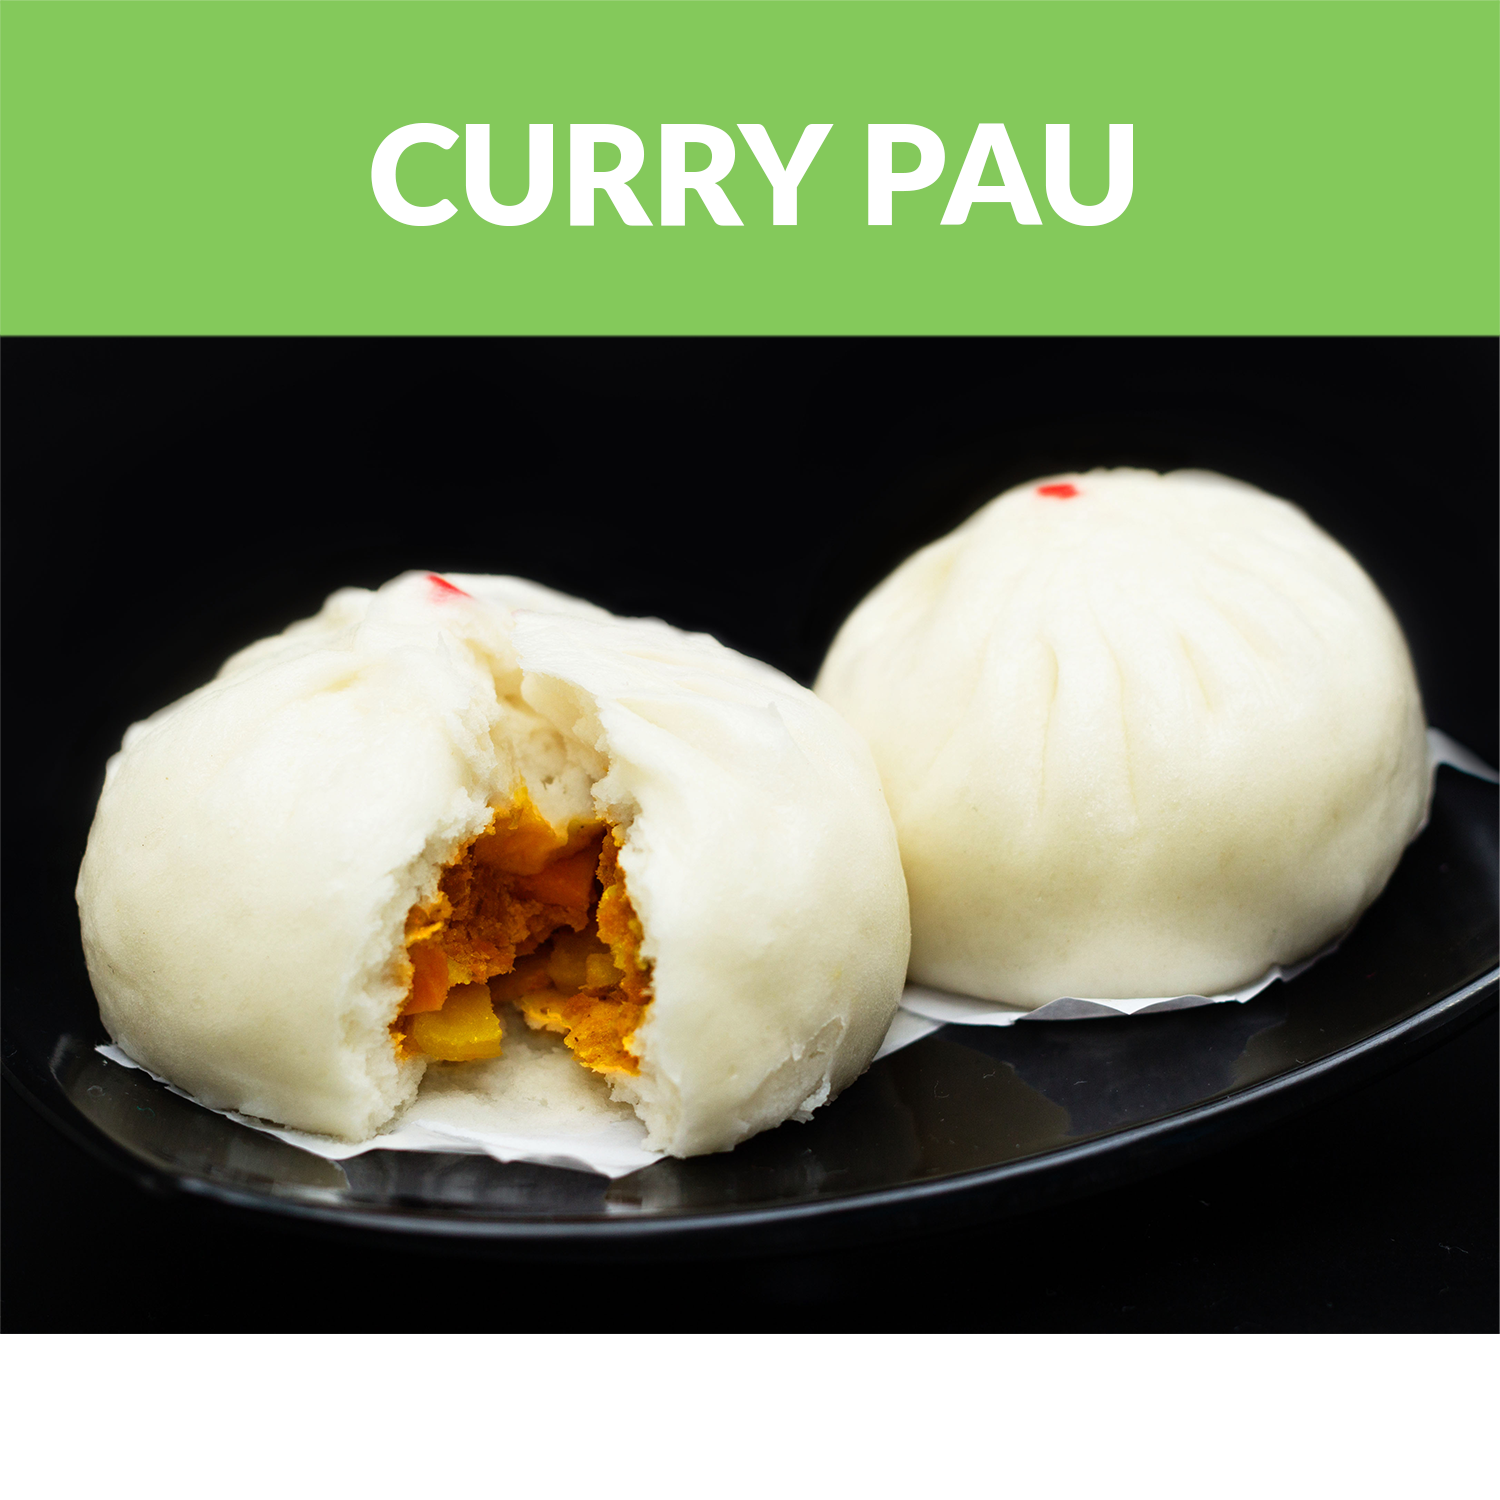 Products-Paus-Curry-Pau.png